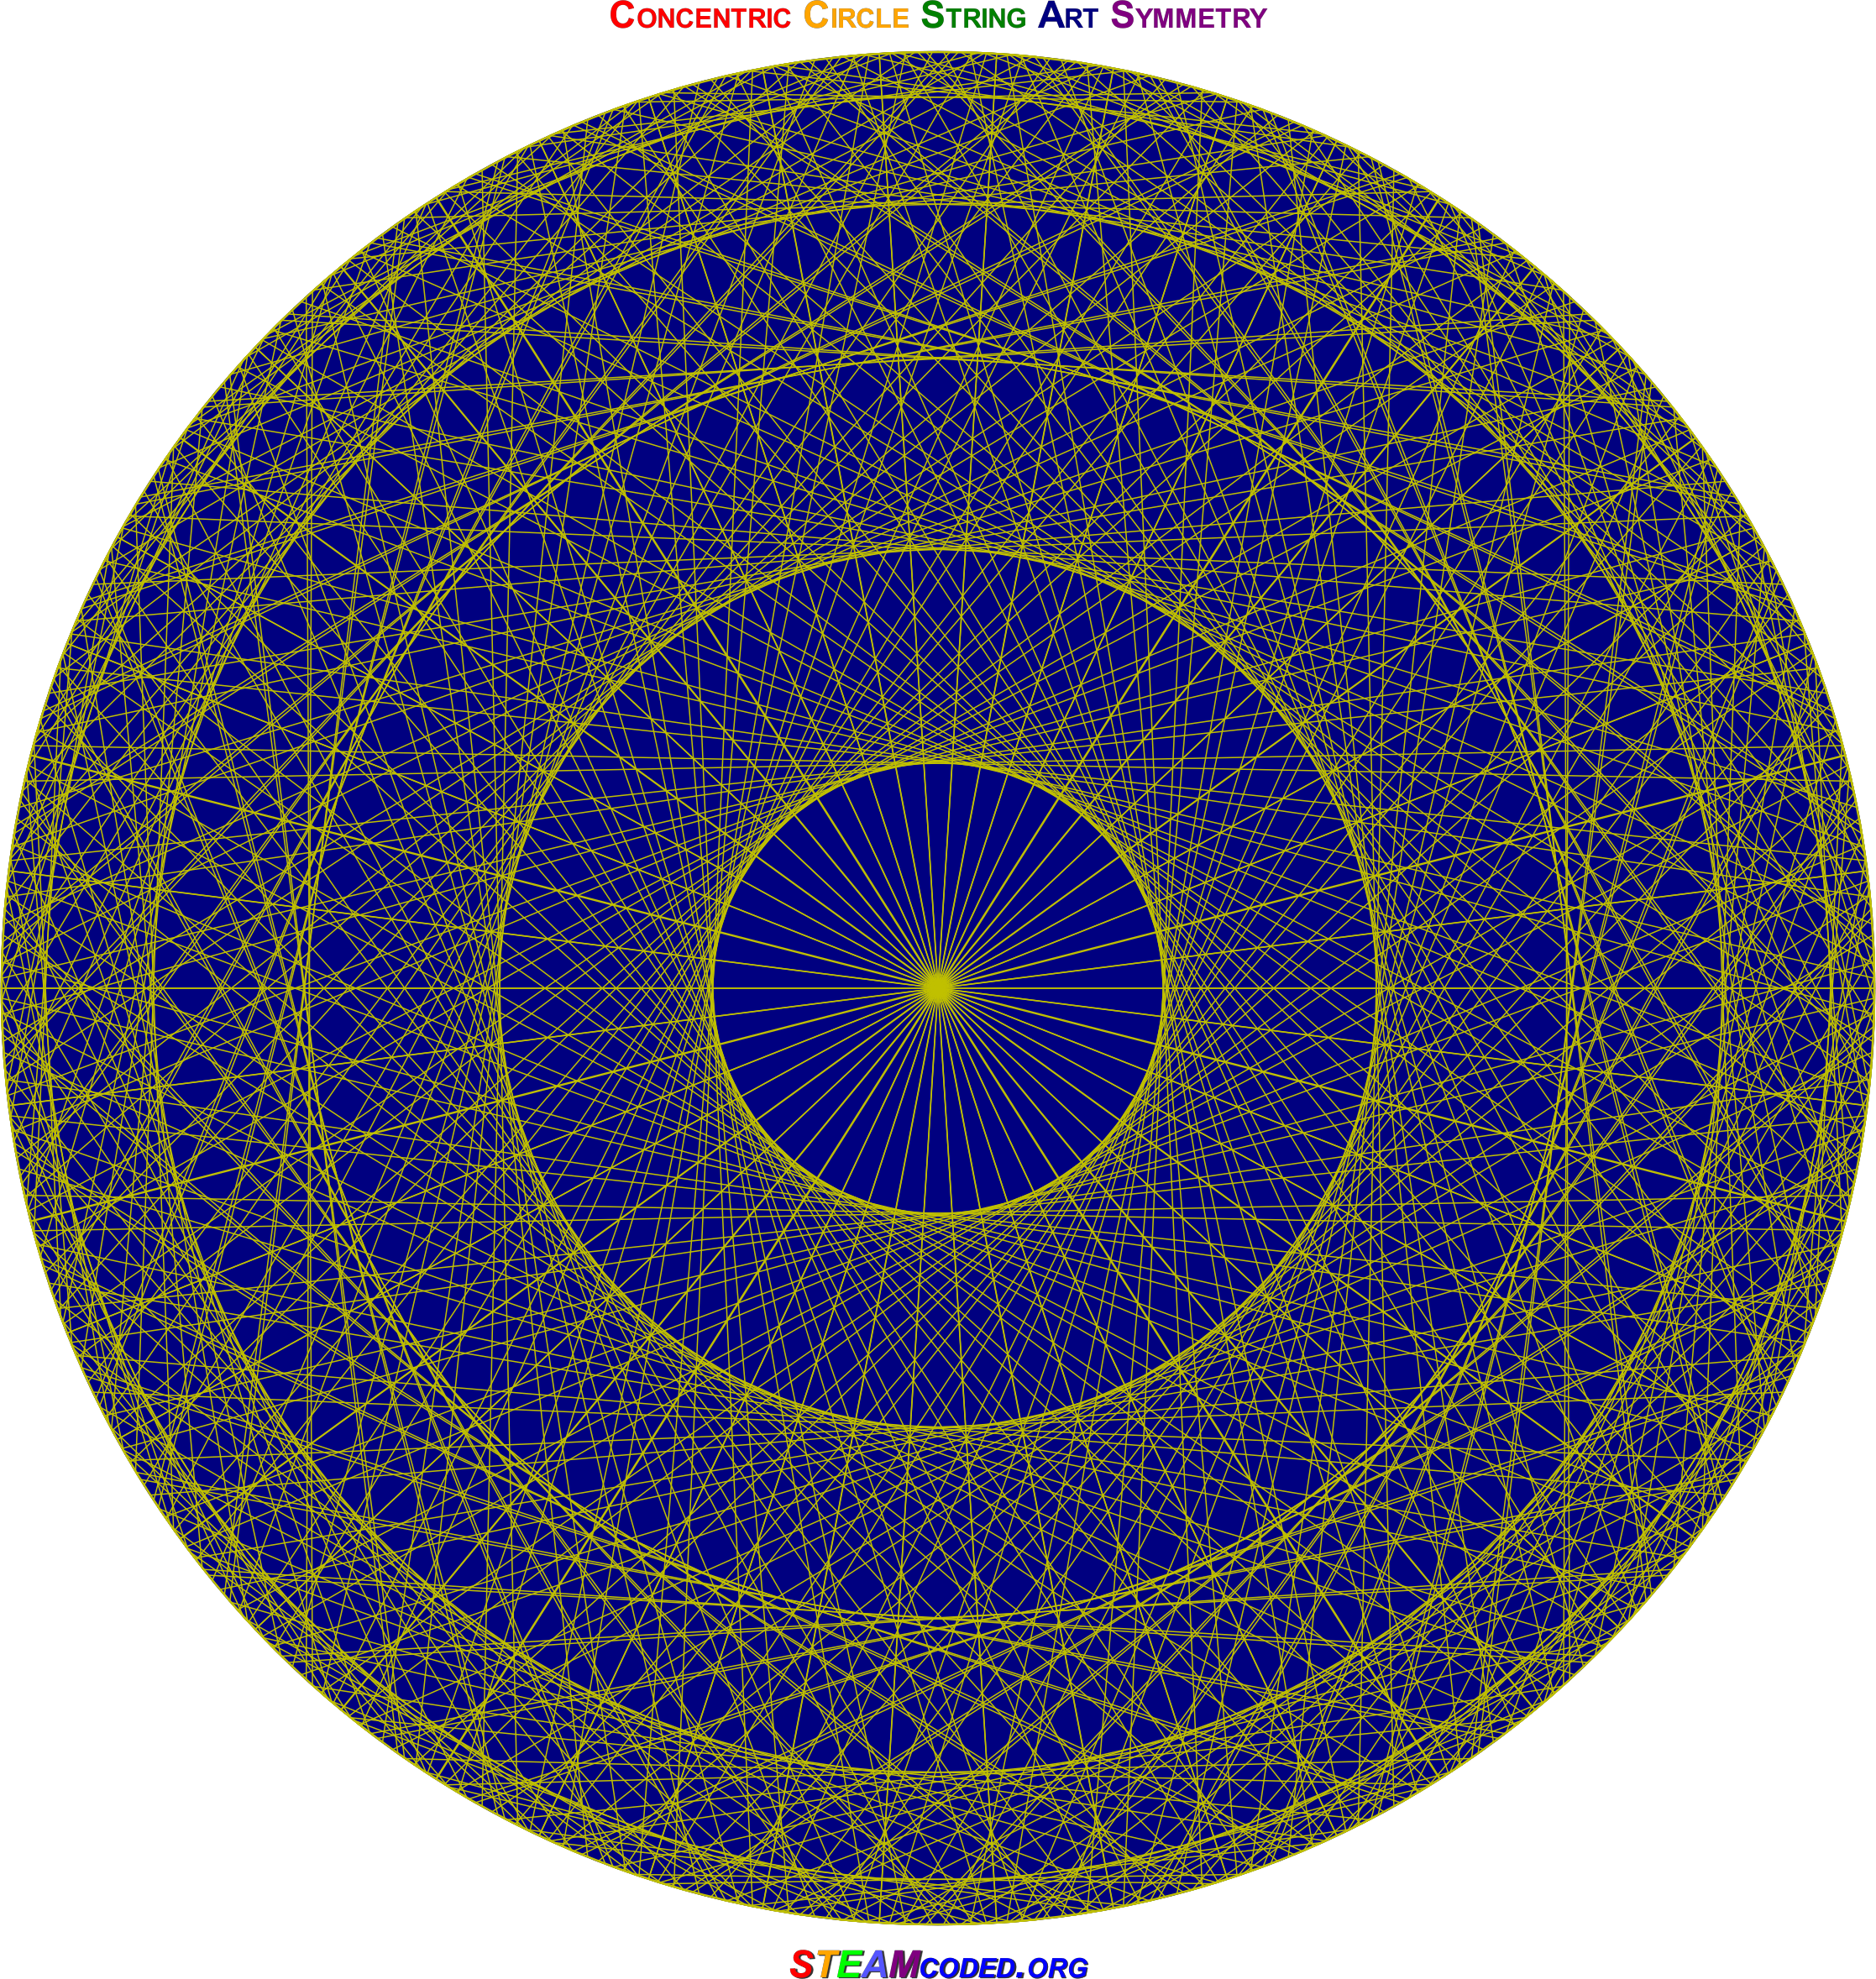 Concentric Circle Symmetry 5 by JayNick